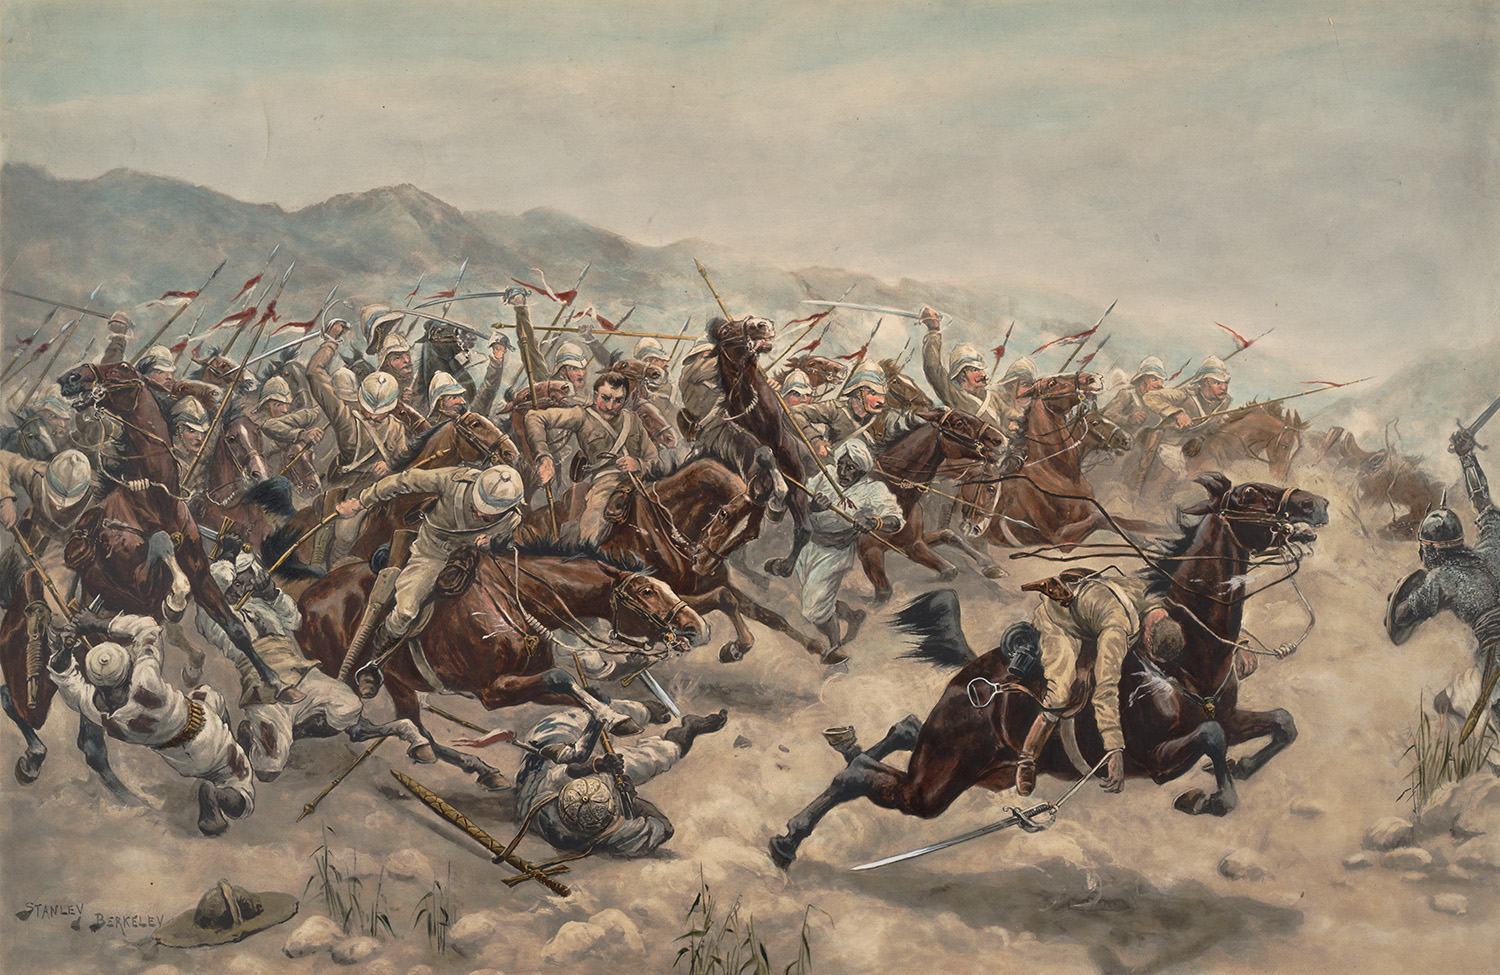 The epic charge of the 21st Lancers, which resulted in much loss amongst the cavalrymen and their horses; a young Winston Churchill took part (Anne S.K. Brown Military Collection)